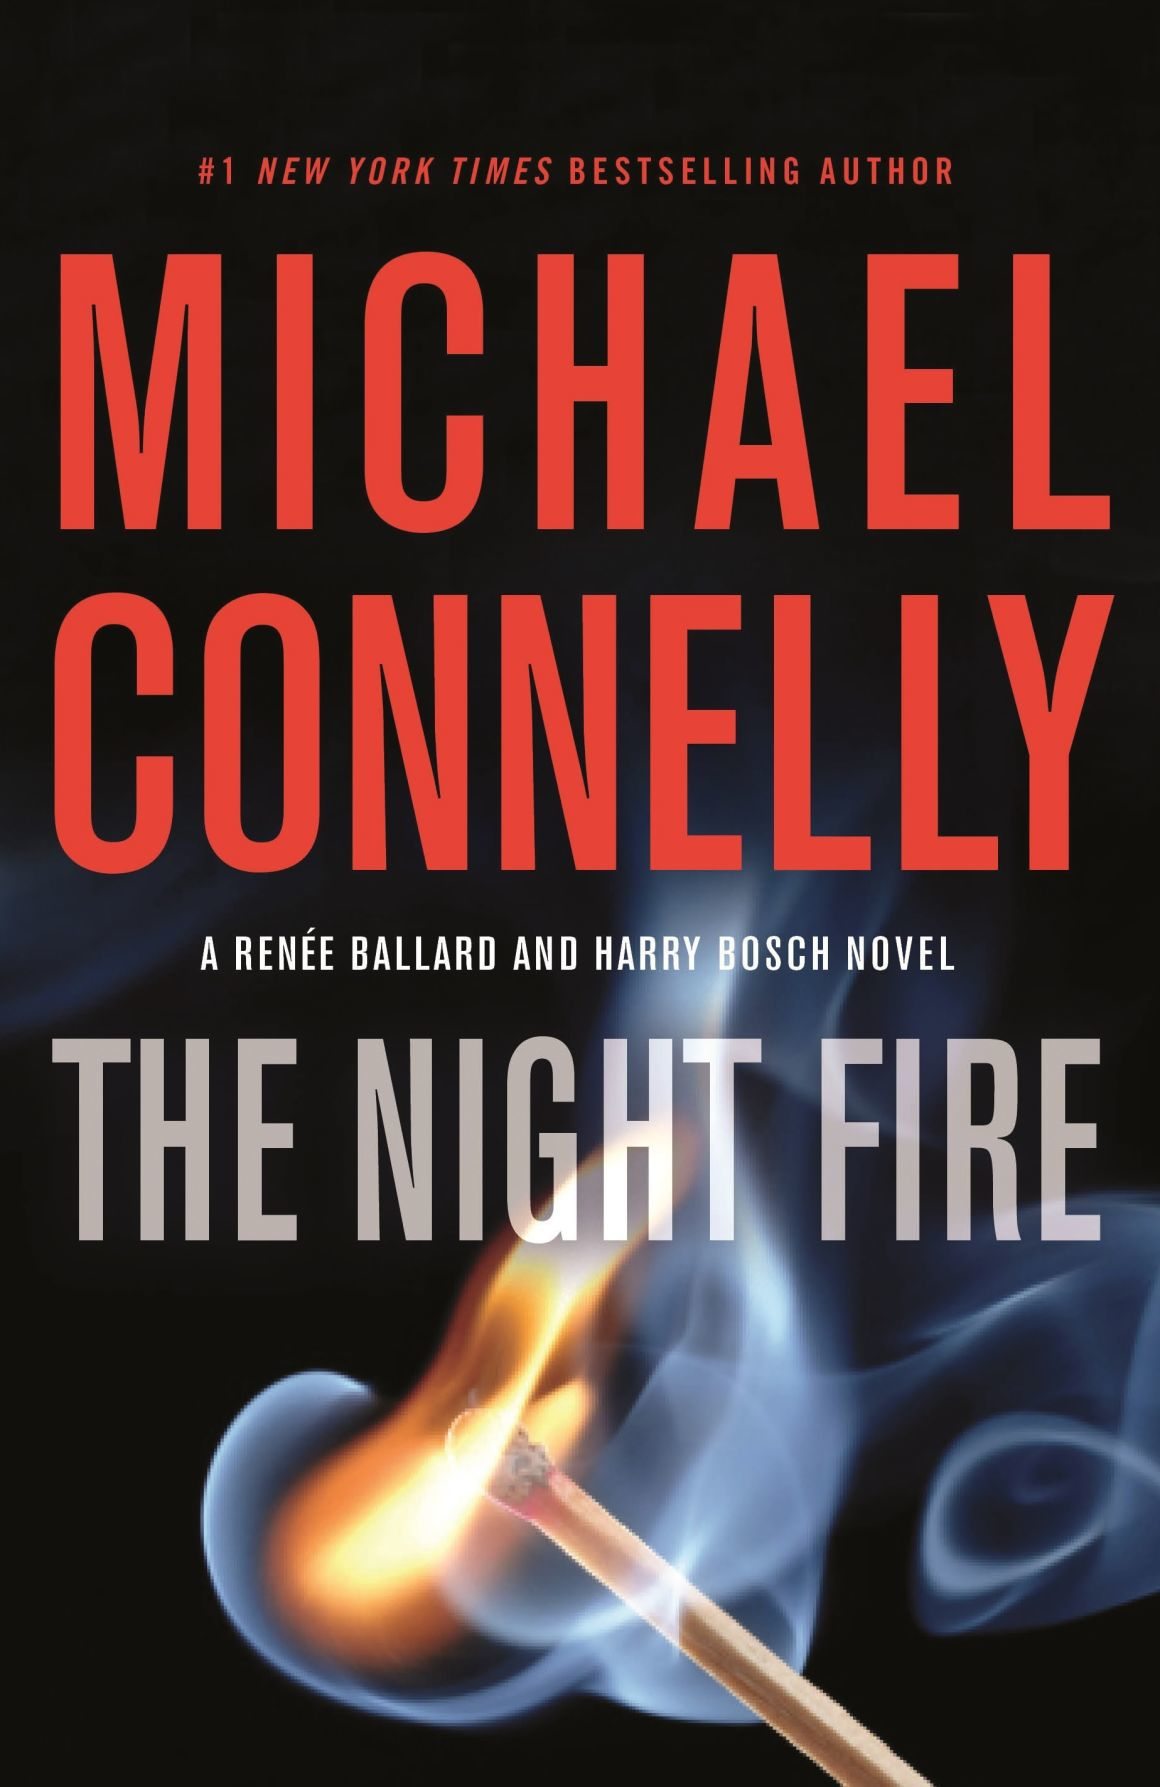 Book Review - The Night Fire